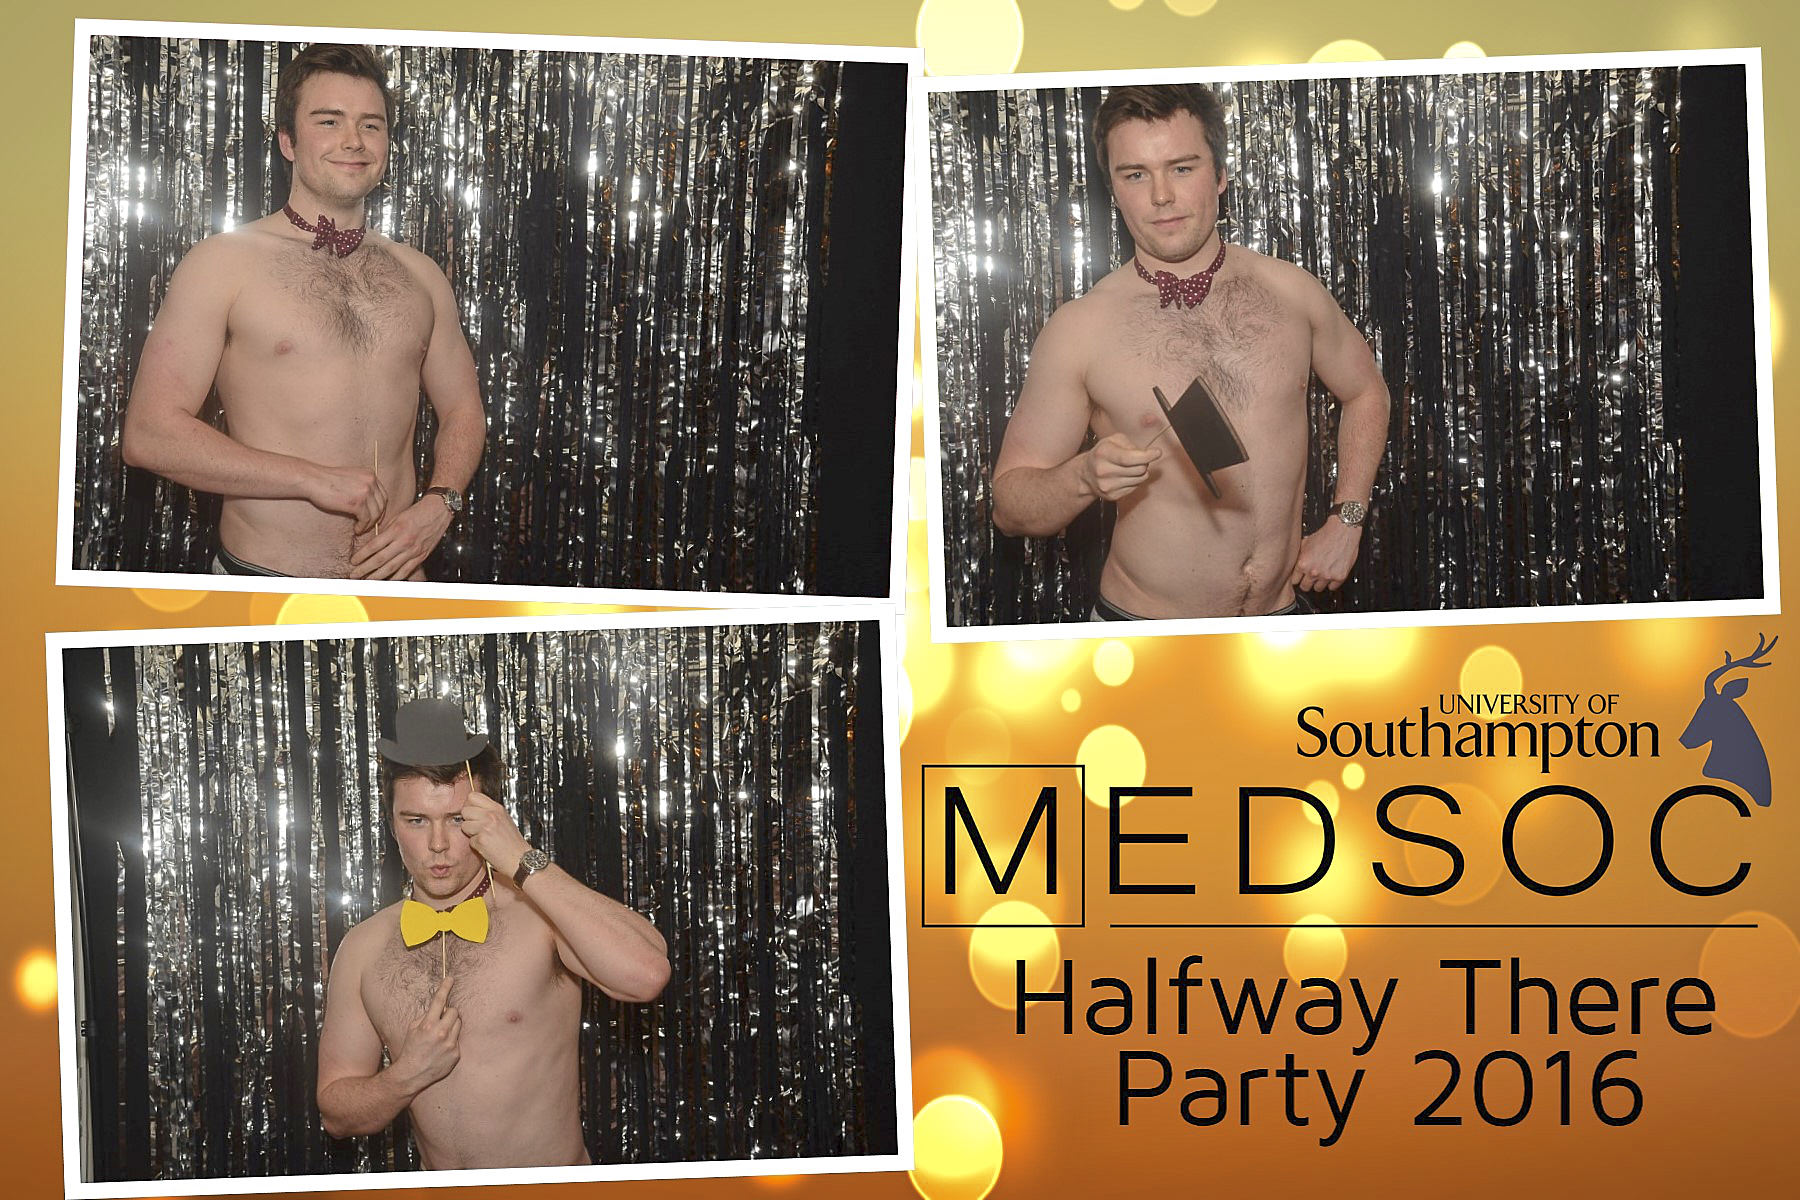 MedSoc Halfway There Party 2016 DS215233.jpg